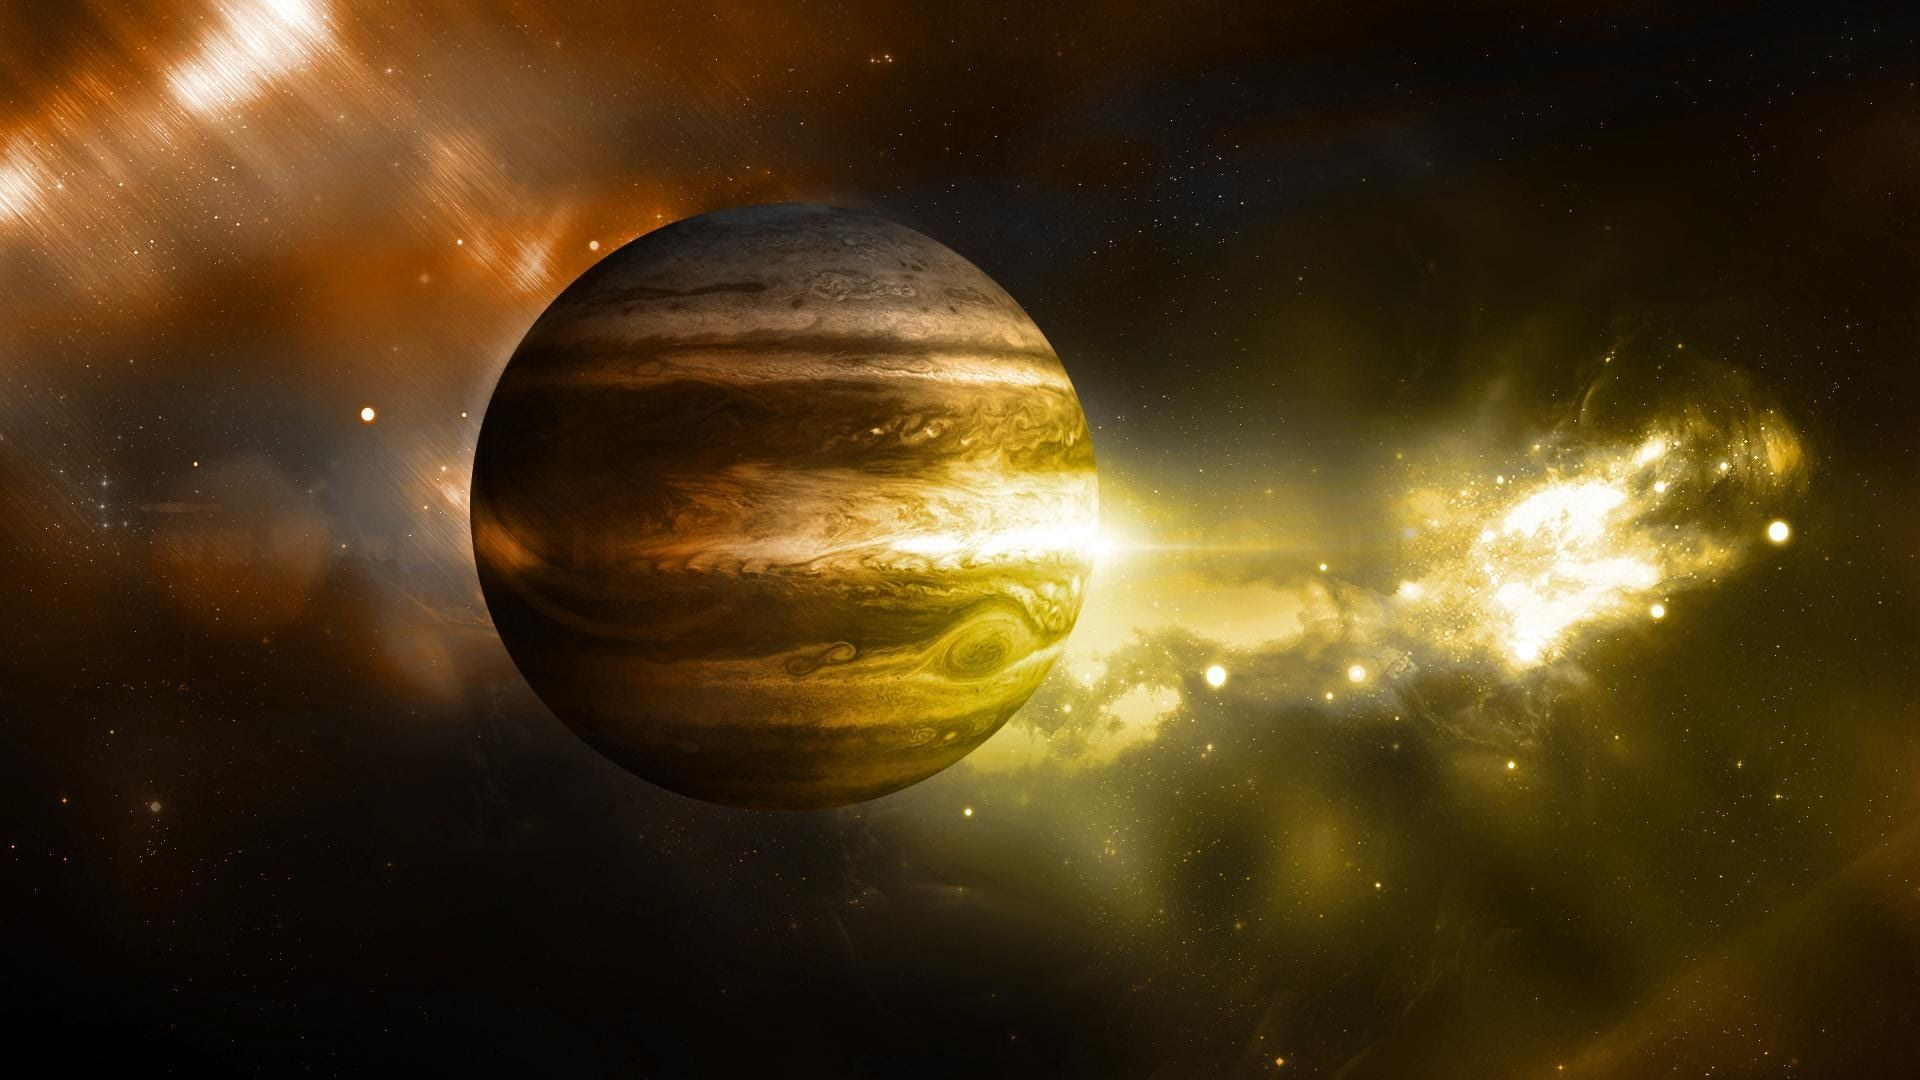 1920x1080 Jupiter HD Wallpapers | 7wallpapers.net